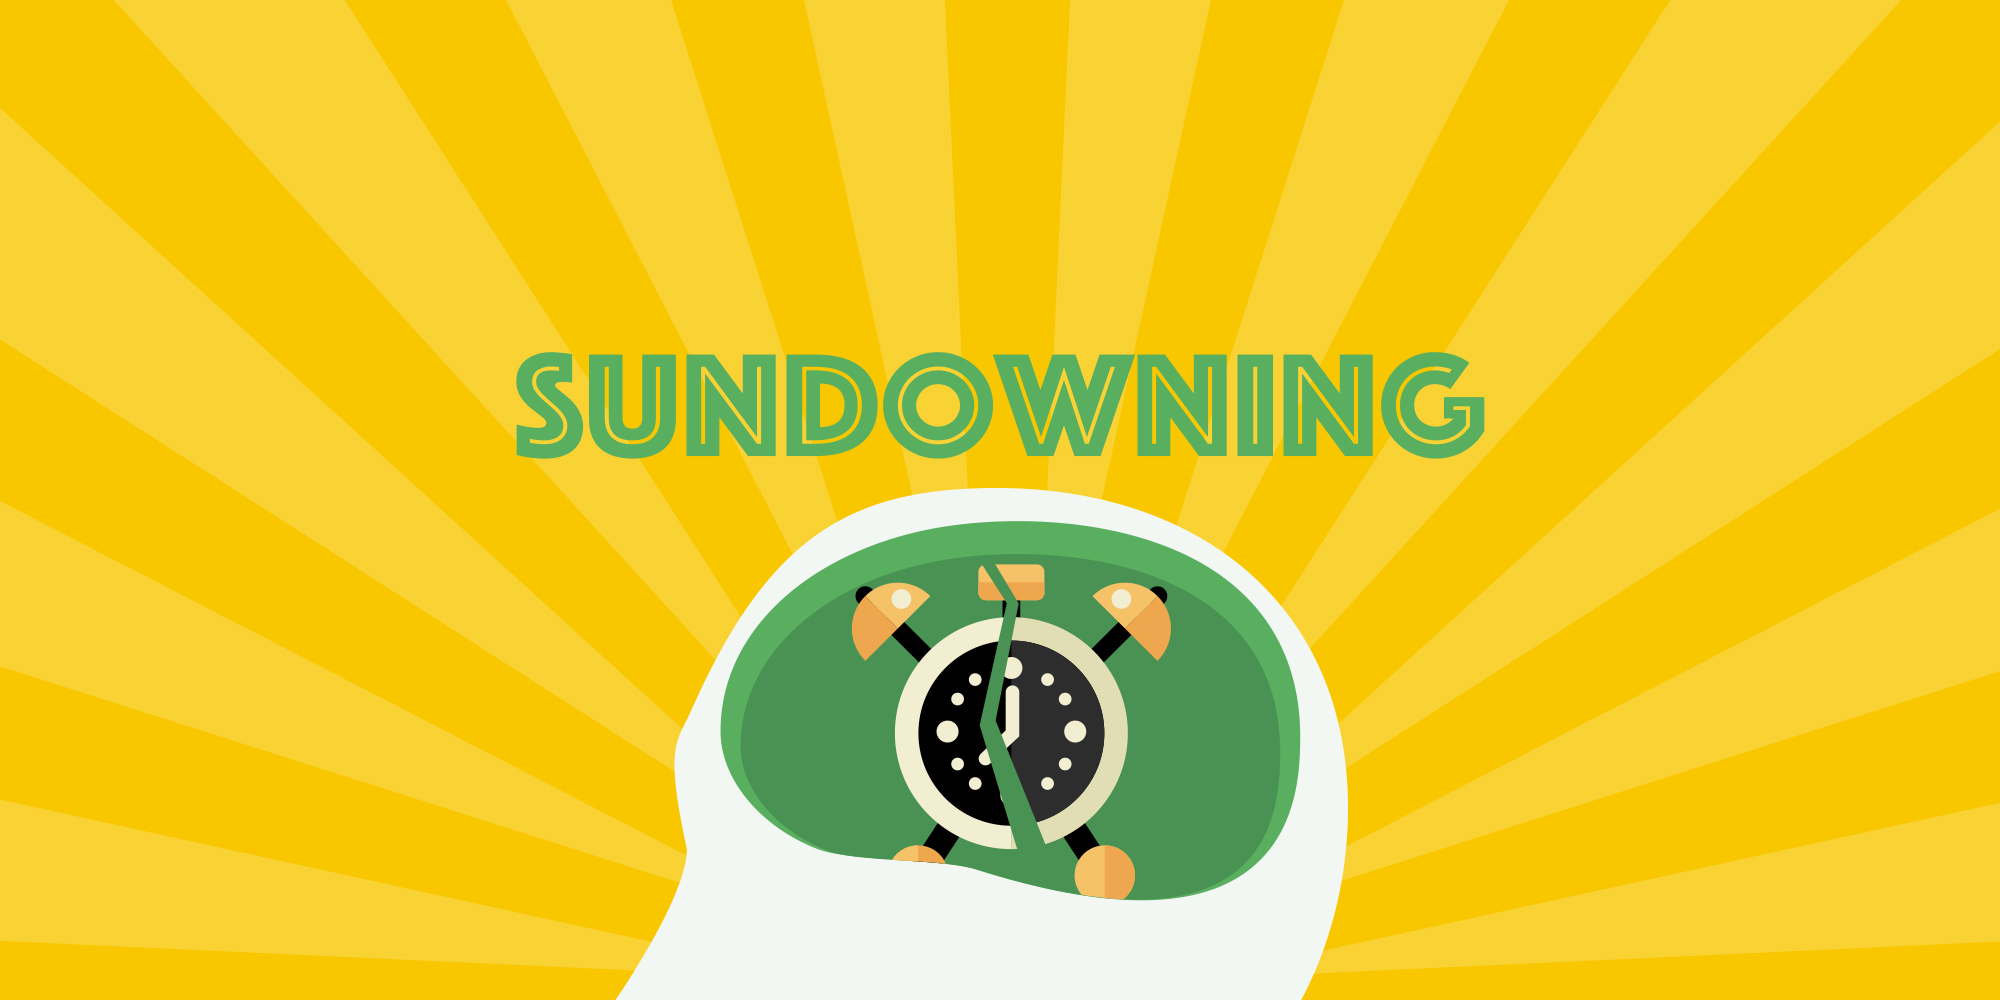 Sundowning with Dementia and Effective Coping Strategies - Kindly Care